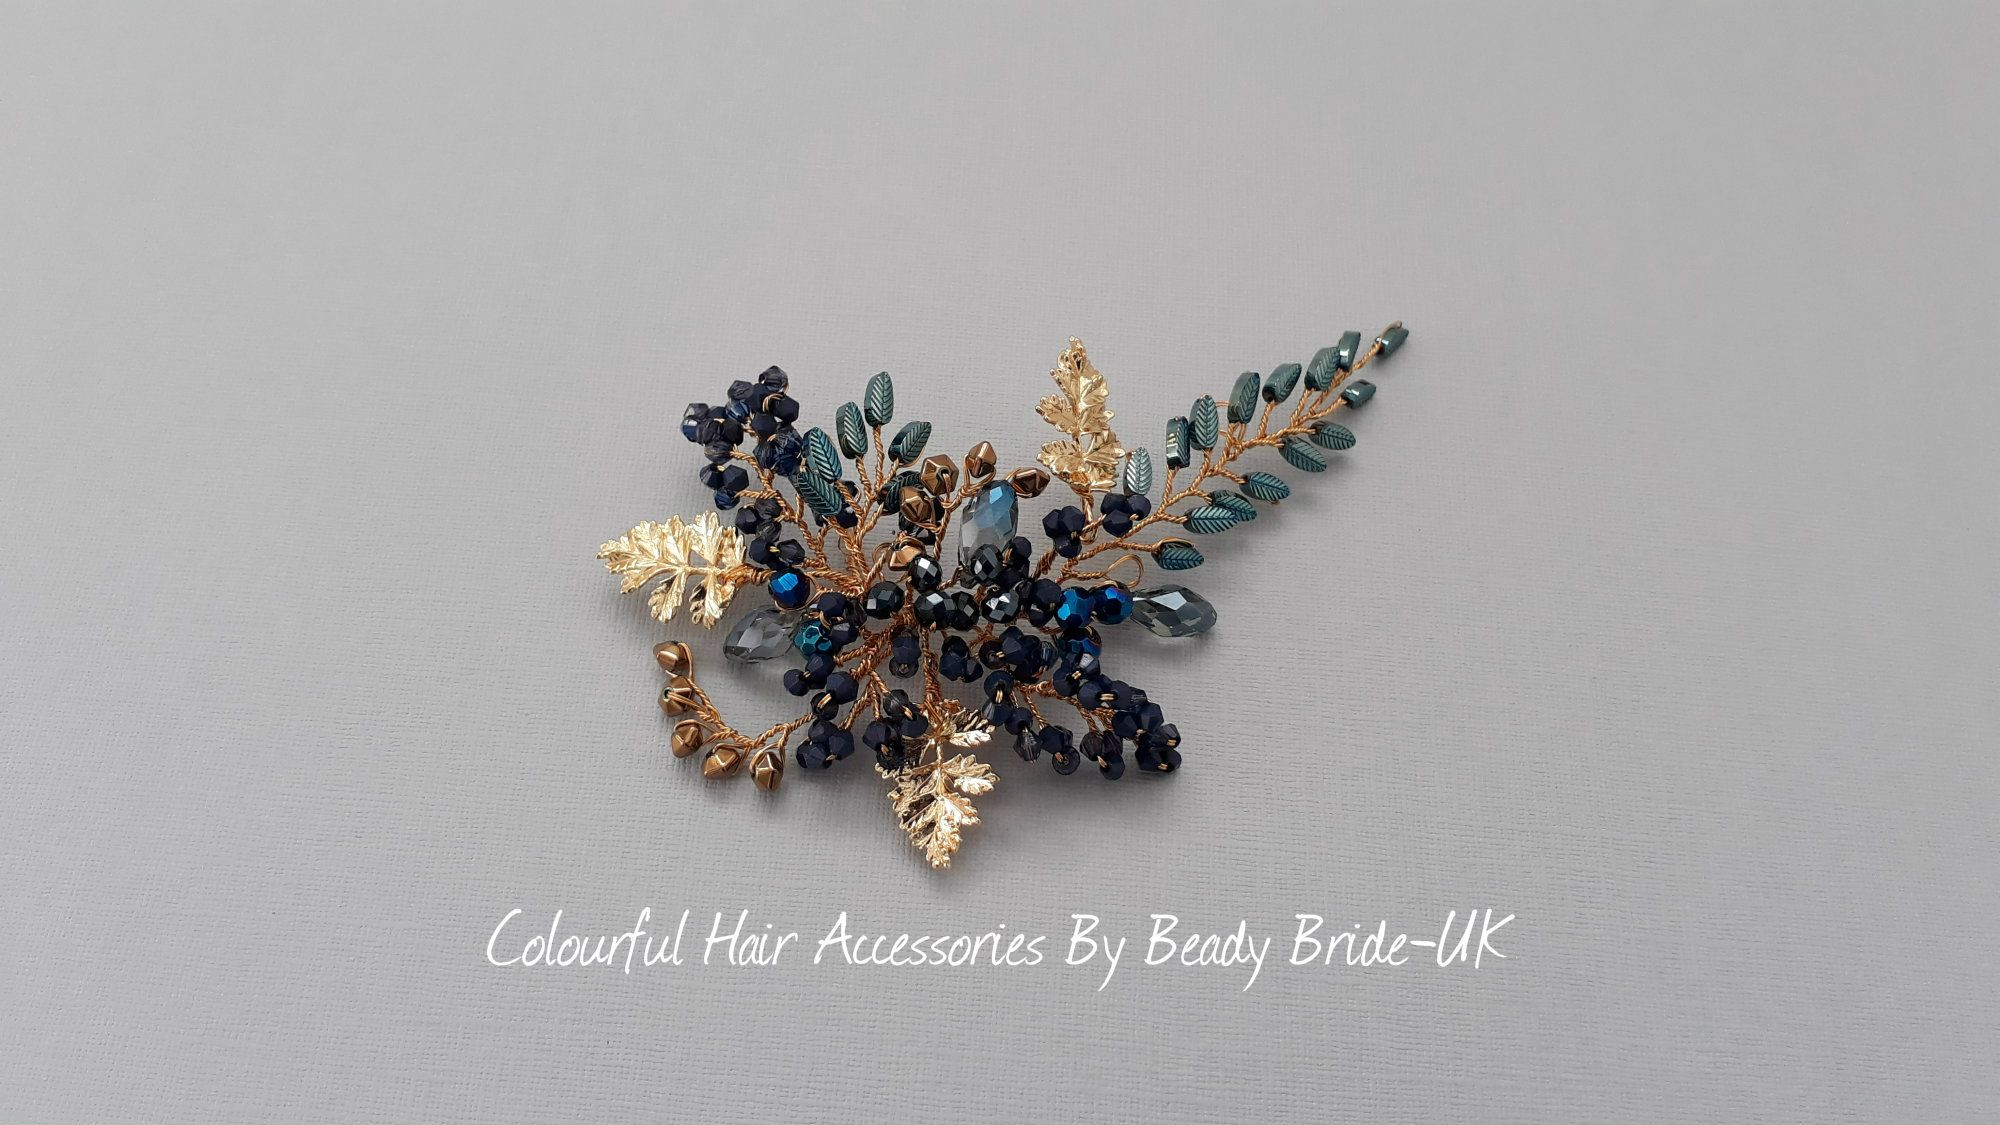 Colourful Hair Accessories By Beady Bride-UK-20190810_165056.2